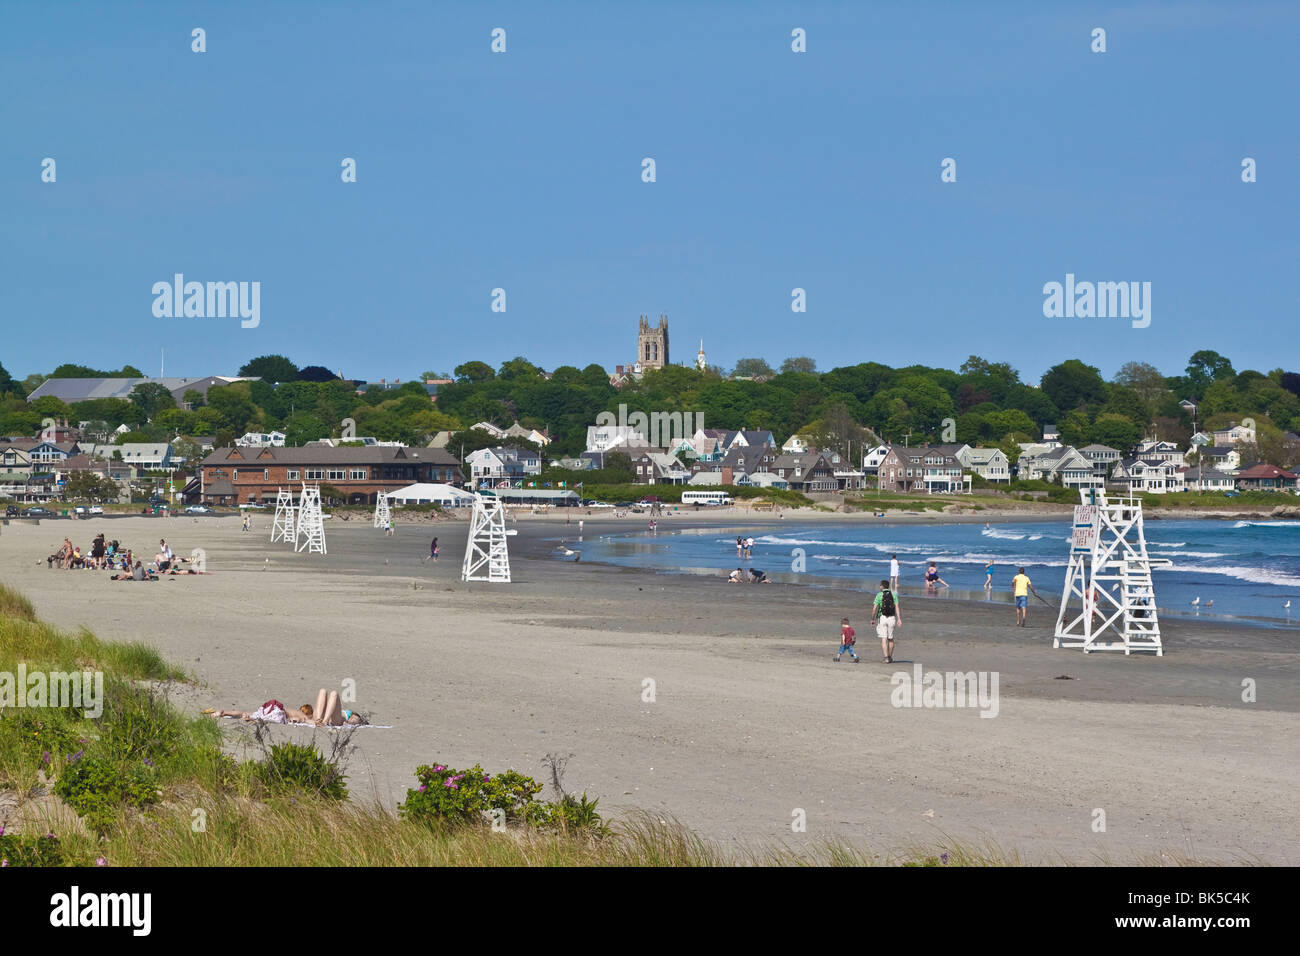 east coast u s a beach holiday stock photos east coast u s a beach